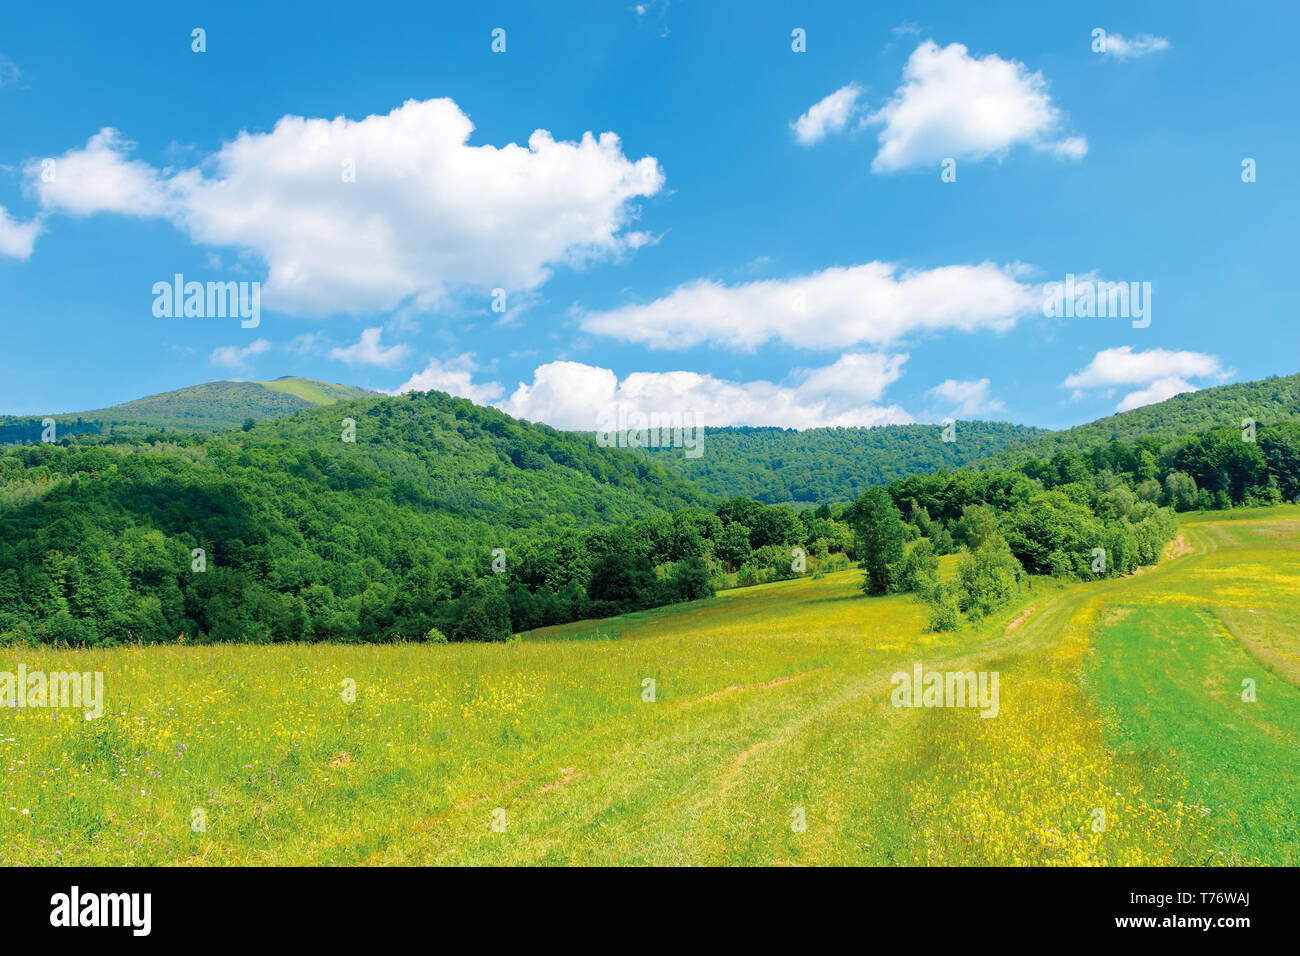 beautiful countryside landscape. wild flowers on rural field near the forest on a tranquil summer day. mountain ridge under cloudy blue sky - Stock Image